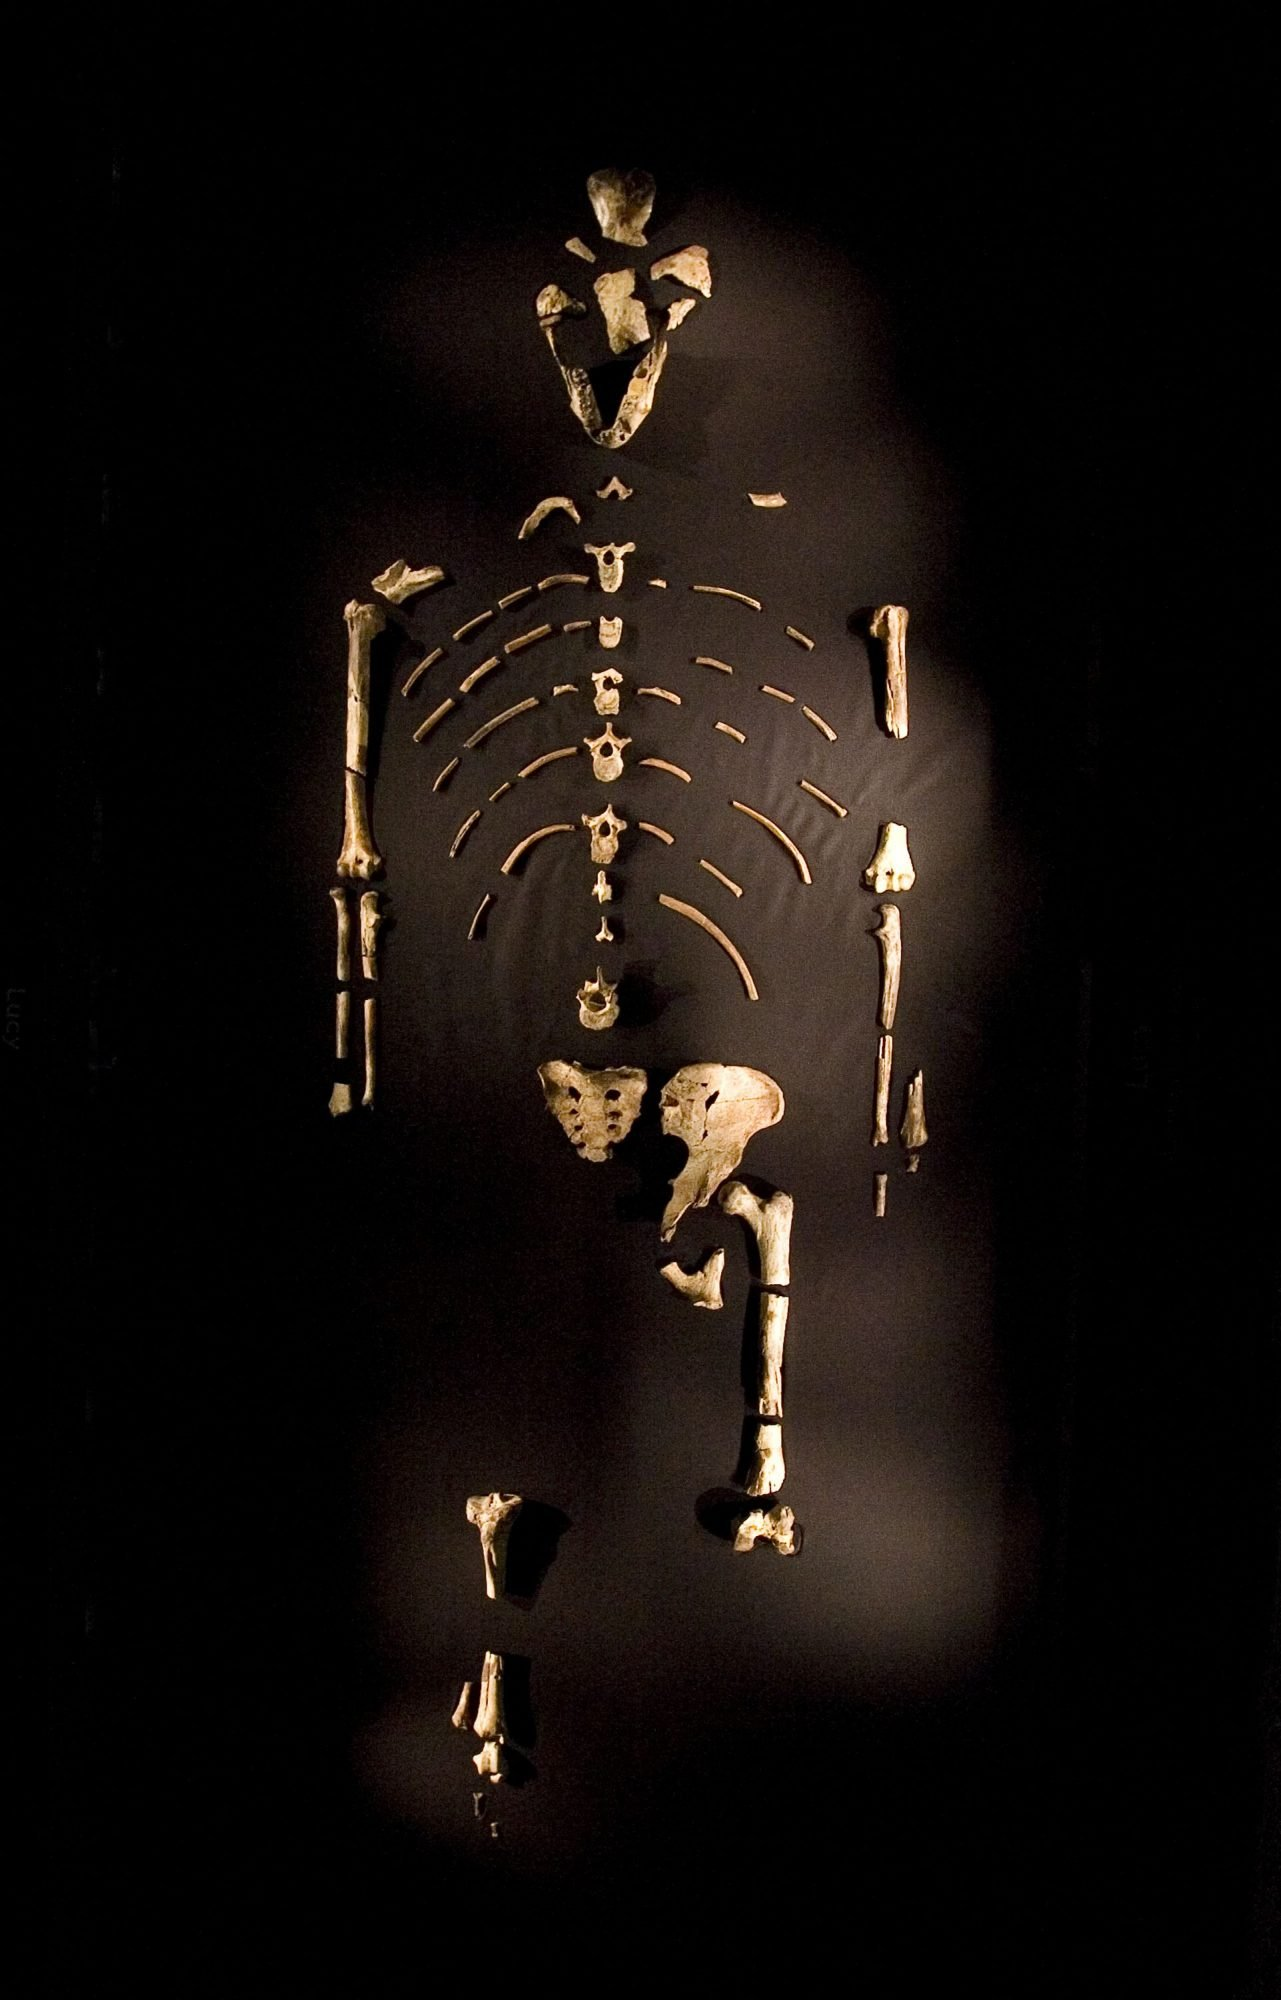 """HOUSTON - AUGUST 28: The 3.2 million year old fossilized remains of """"Lucy"""", the most complete example of the hominid Australopithecus afarensis, is displayed at the Houston Museum of Natural Science, August 28, 2007 in Houston, Texas. The exhibition is the first for the fossil outside of Ethiopia and has generated criticism among the museum community and others that believe the fossil is too fragile to be moved from it's home country. (Photo by Dave Einsel/Getty Images)"""